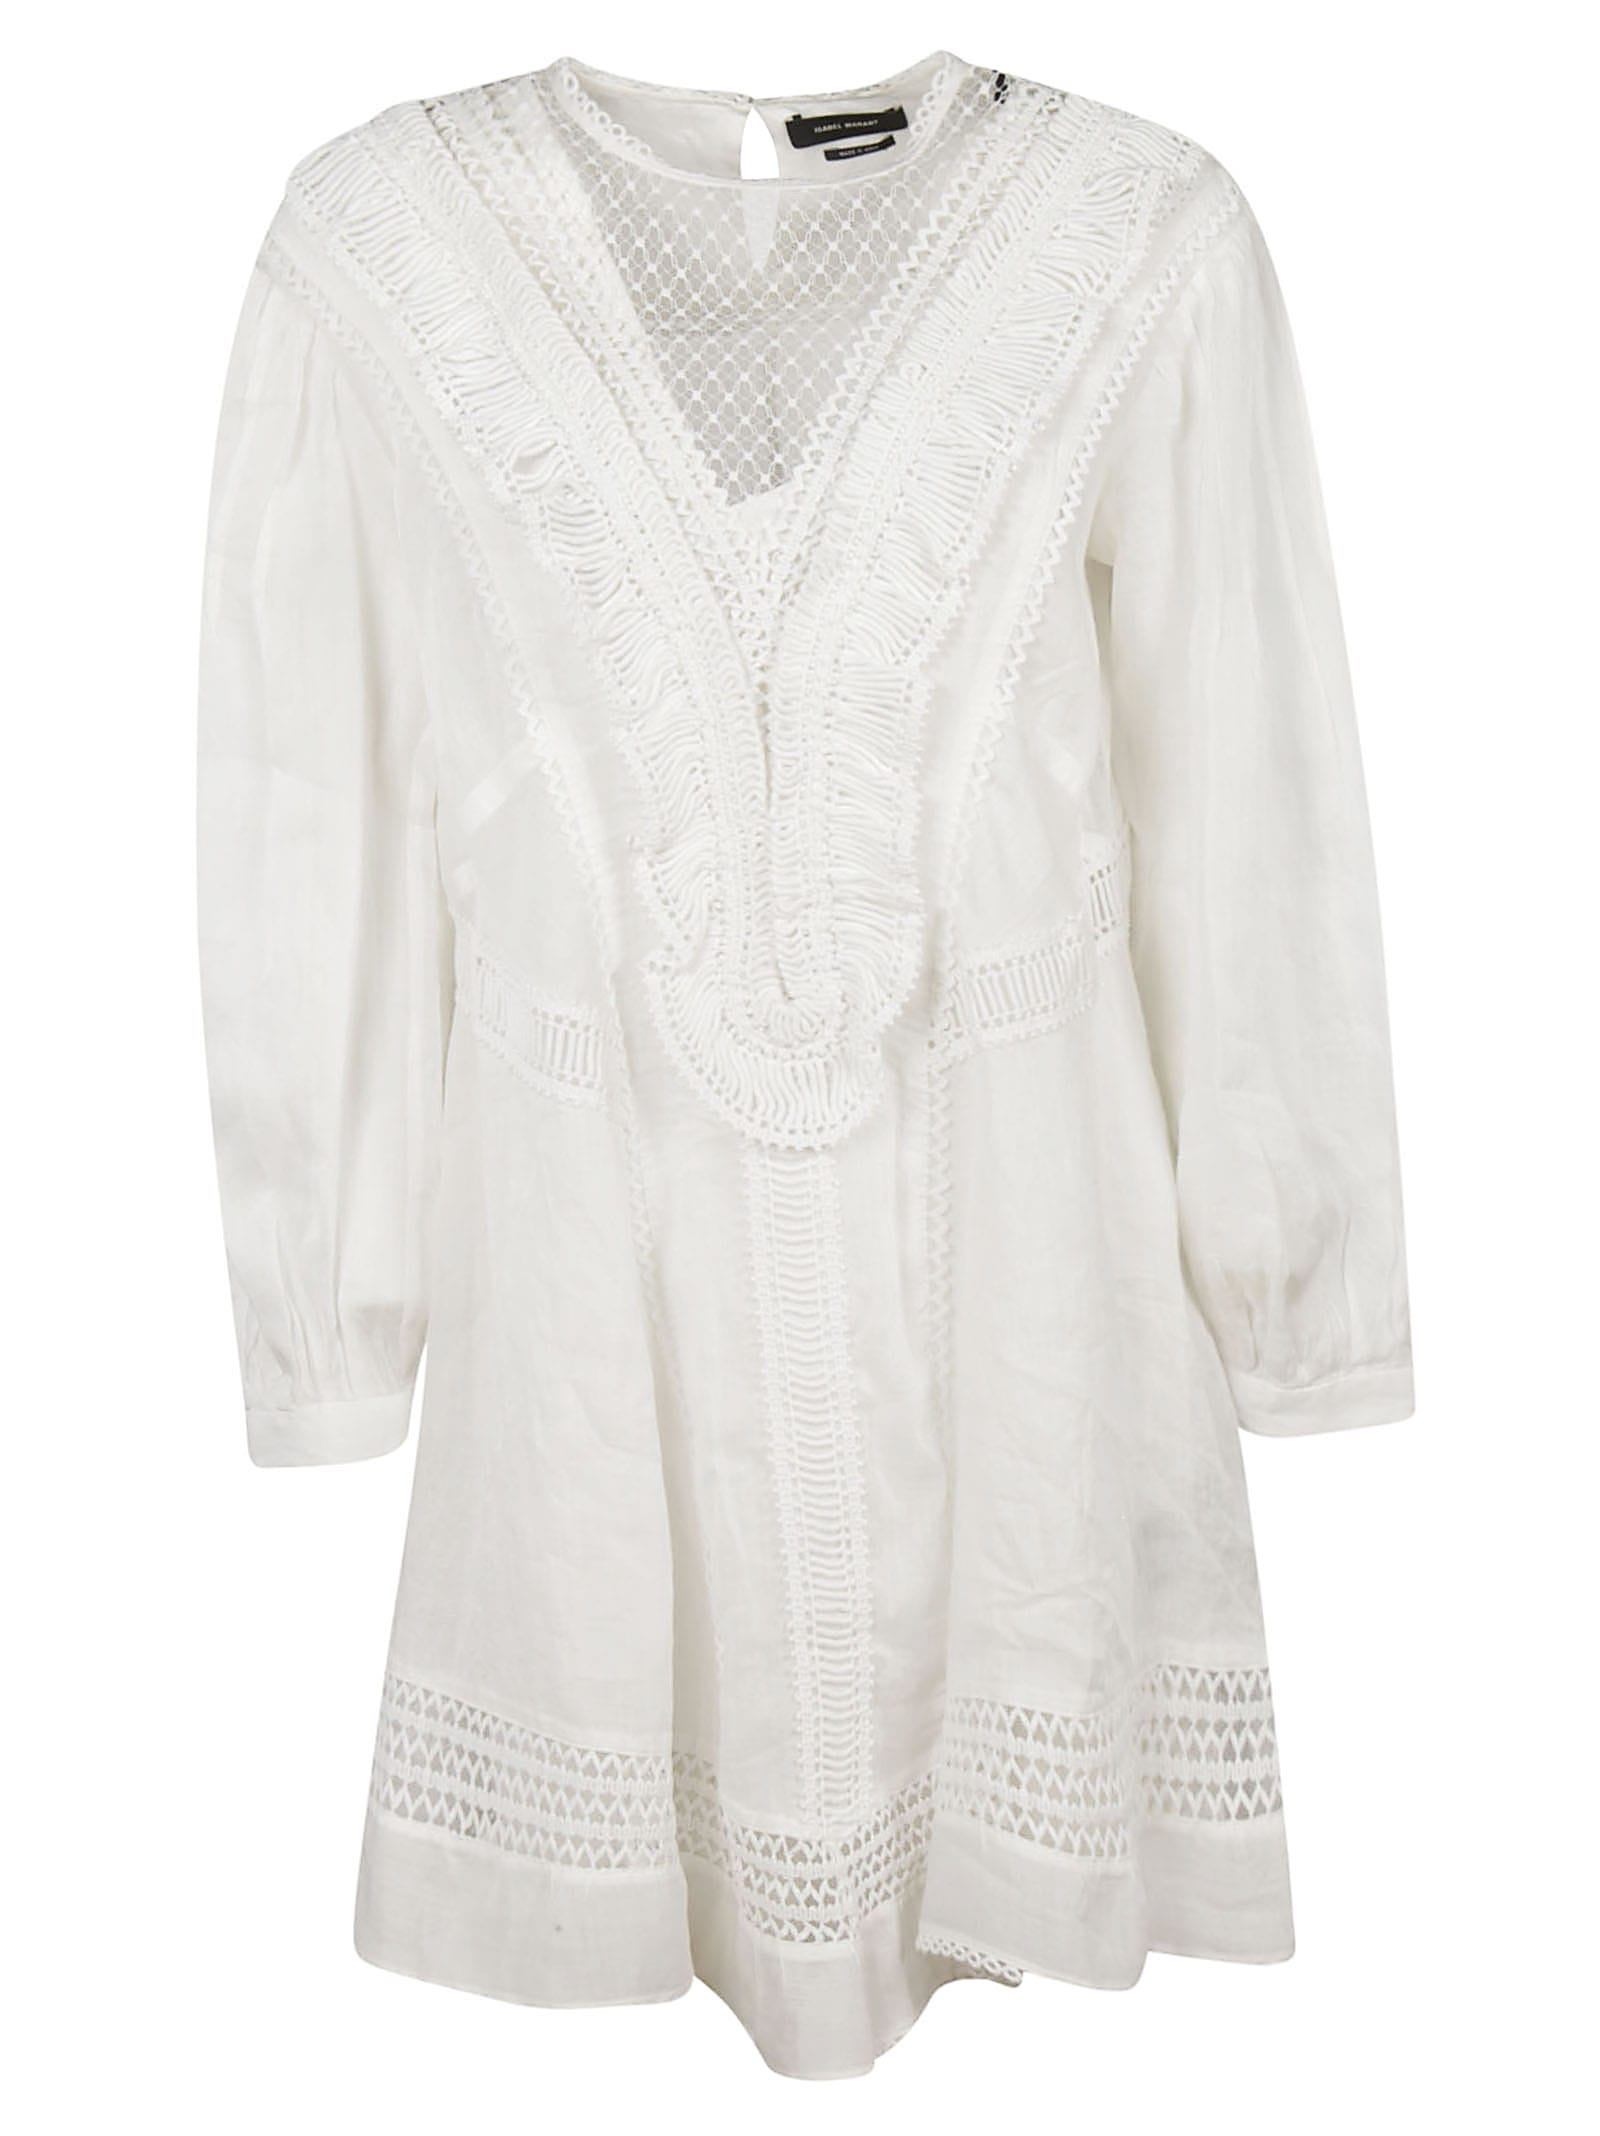 Isabel Marant Perforated Dress